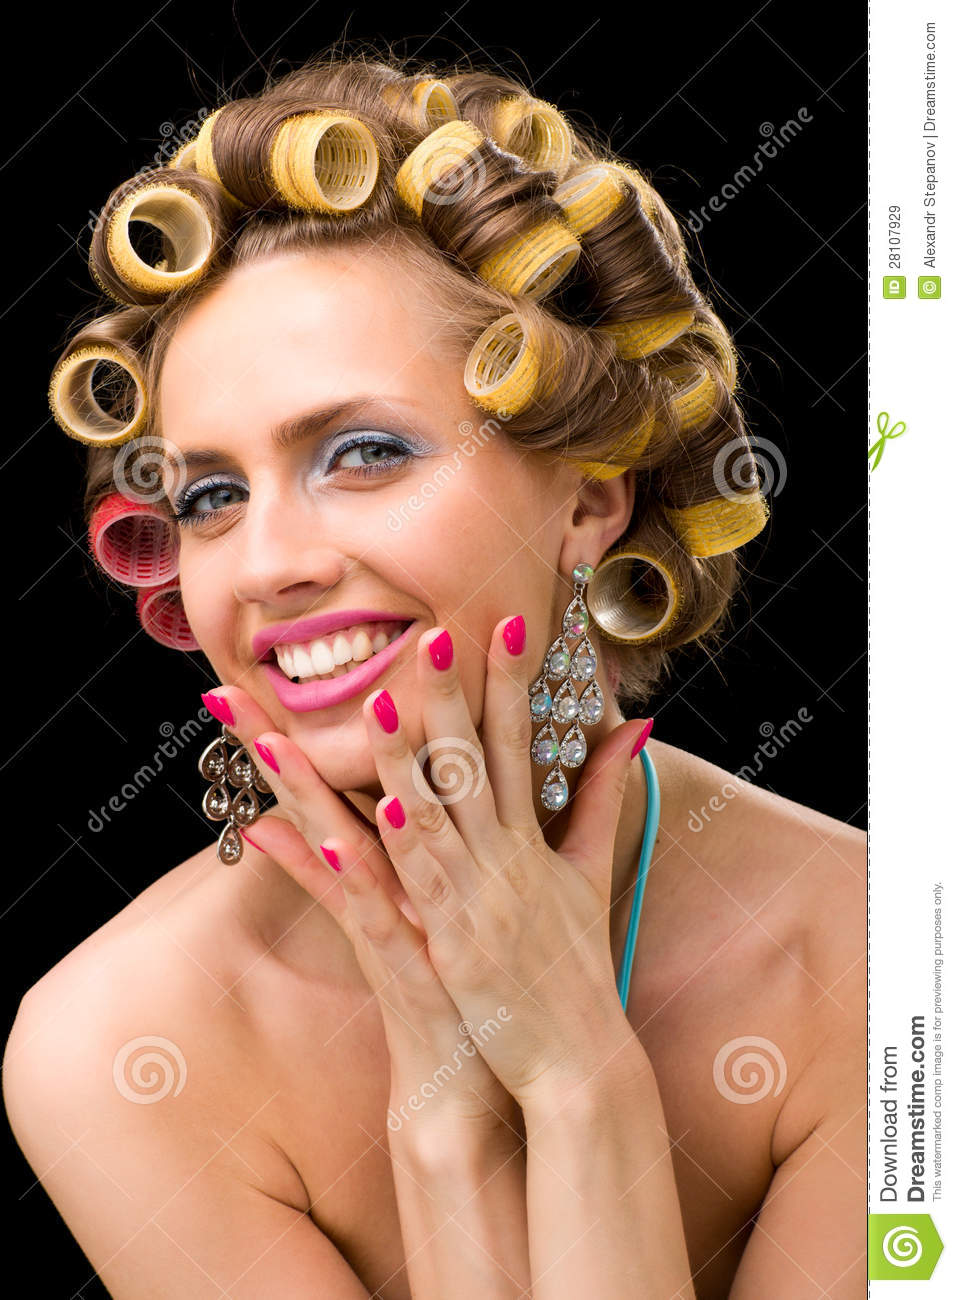 Woman With Hair Curlers Royalty Free Stock Images Image